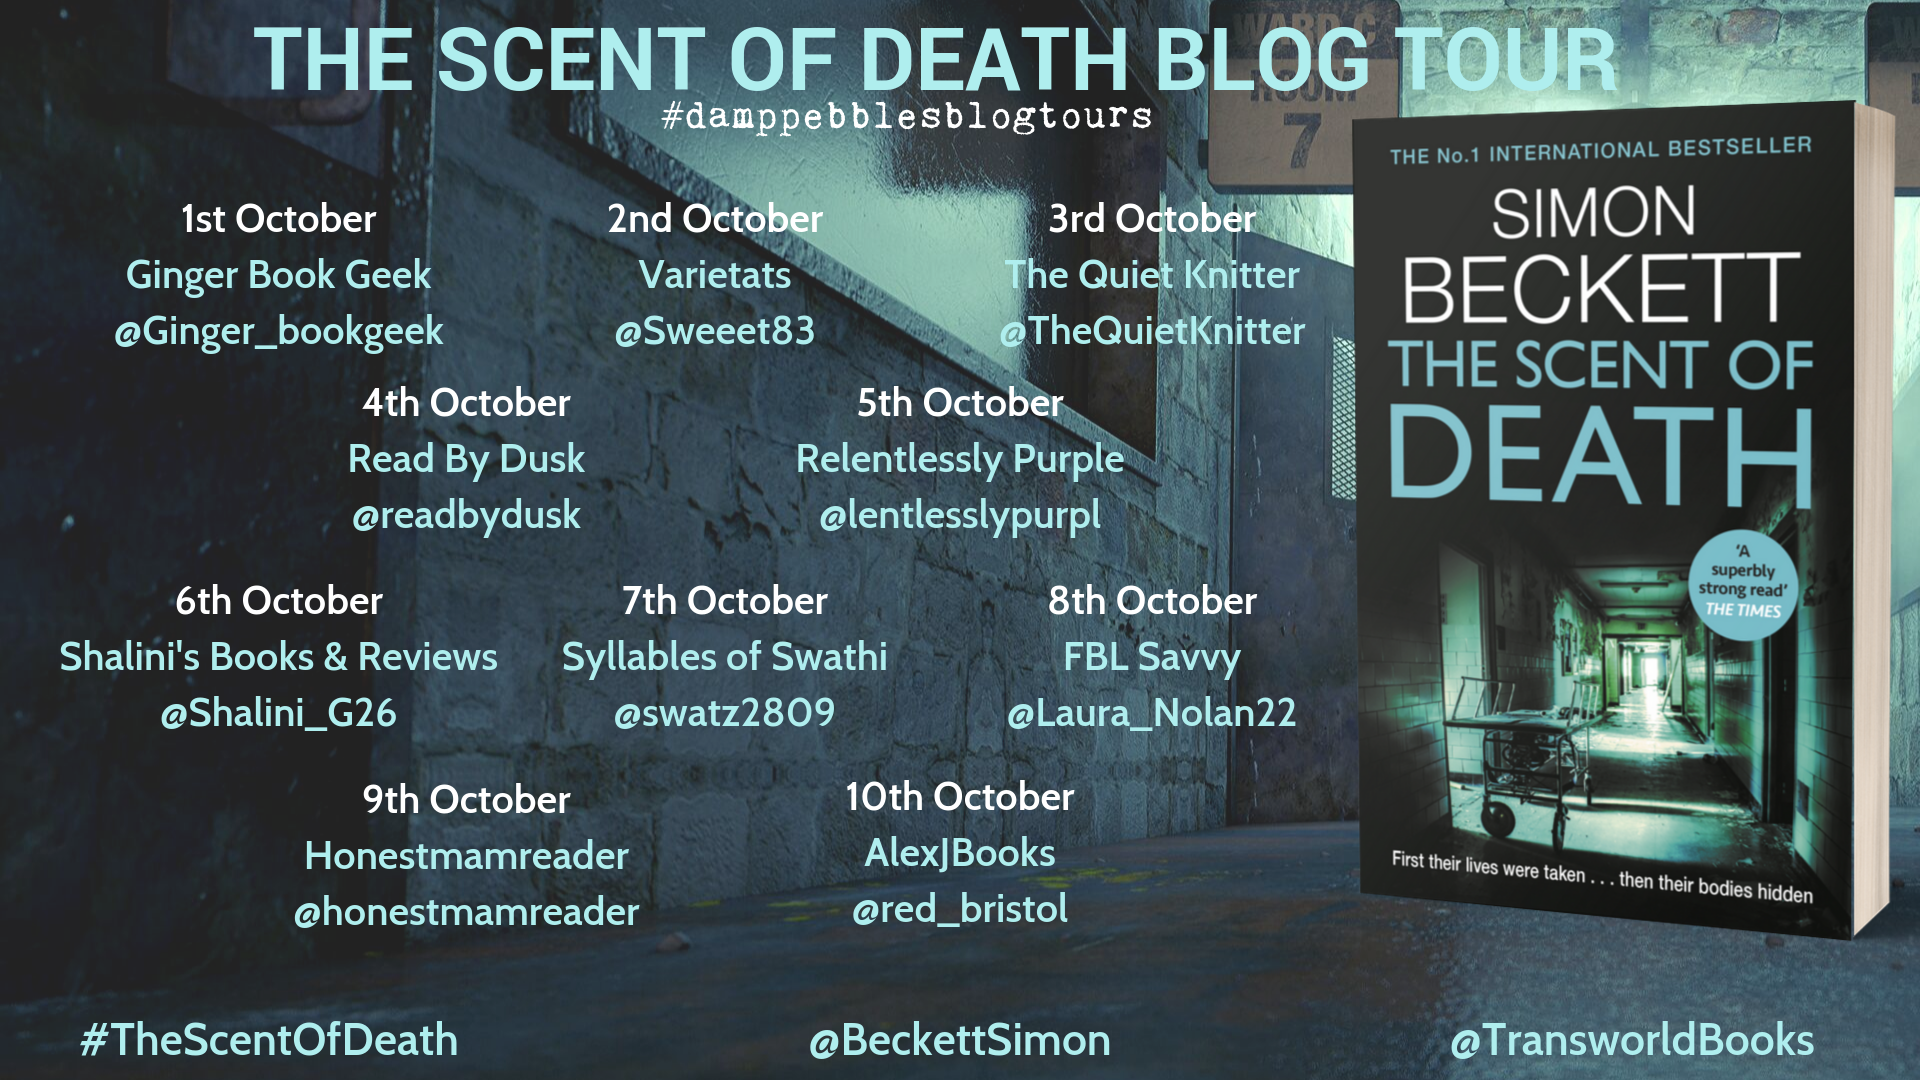 The Scent of Death Blog Tour Poster